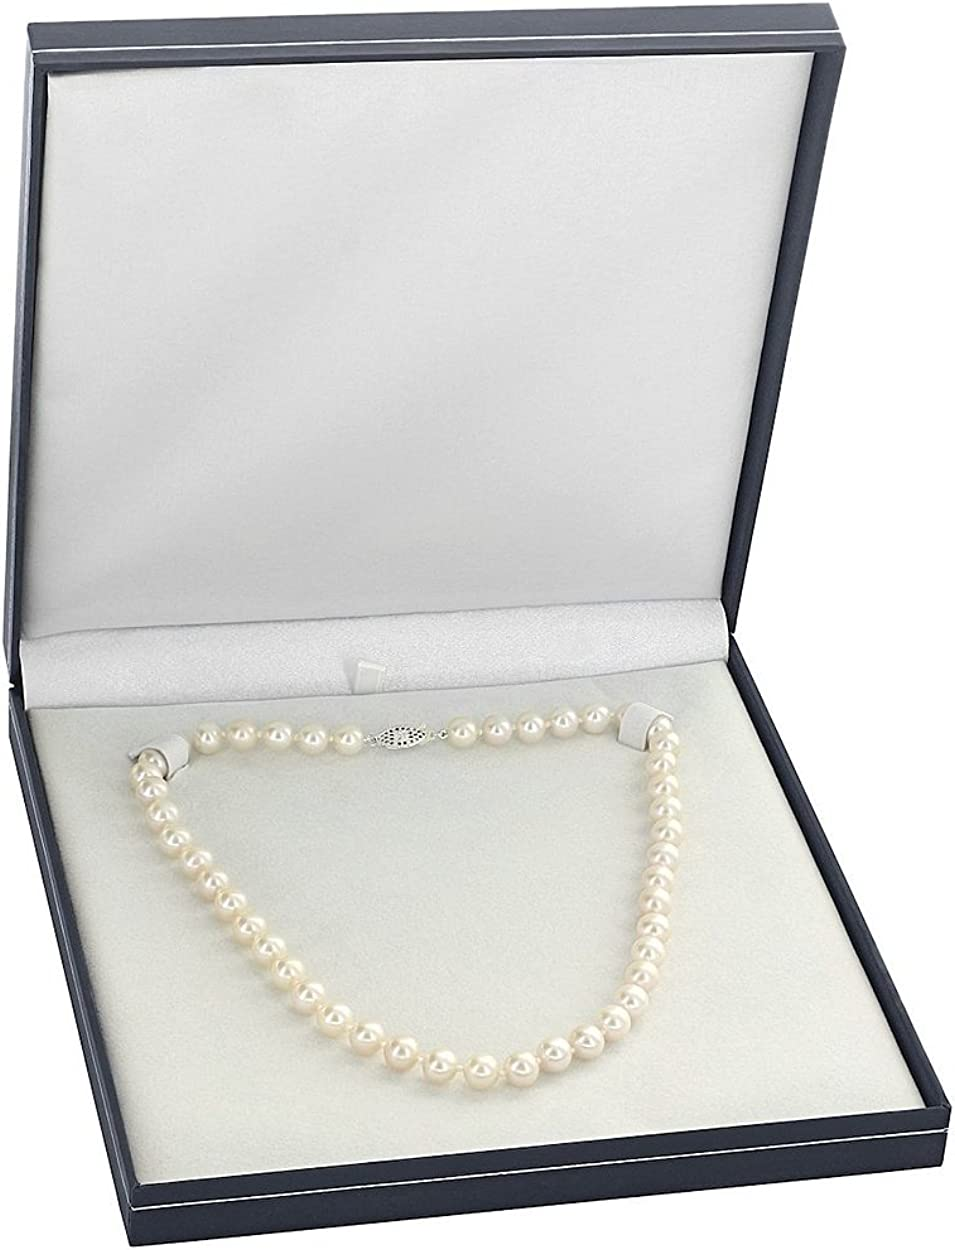 THE PEARL SOURCE 14K Gold 8-9mm AAAA Quality White Freshwater Cultured Pearl Necklace for Women in 16 Choker Length